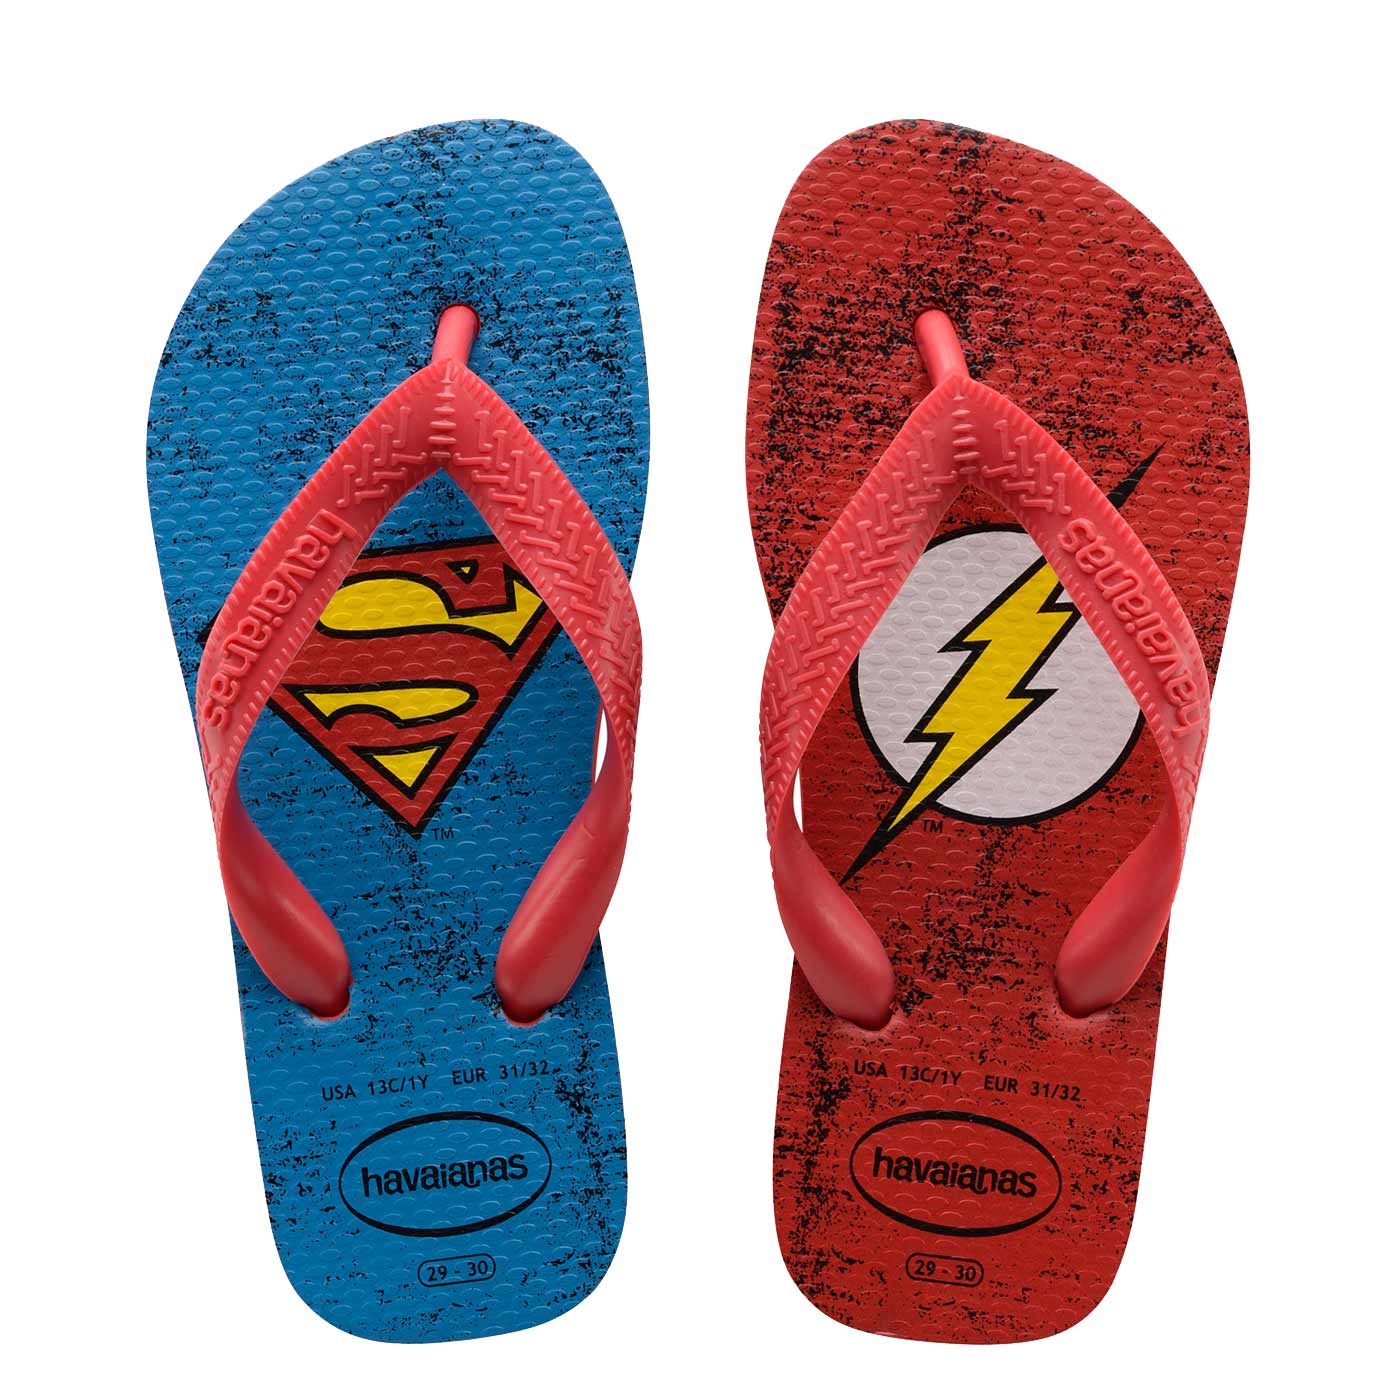 121f15f5e2d6 Havaianas Max Hero - Boys-Sandals   Fussy Feet - Welcome to Fussy ...